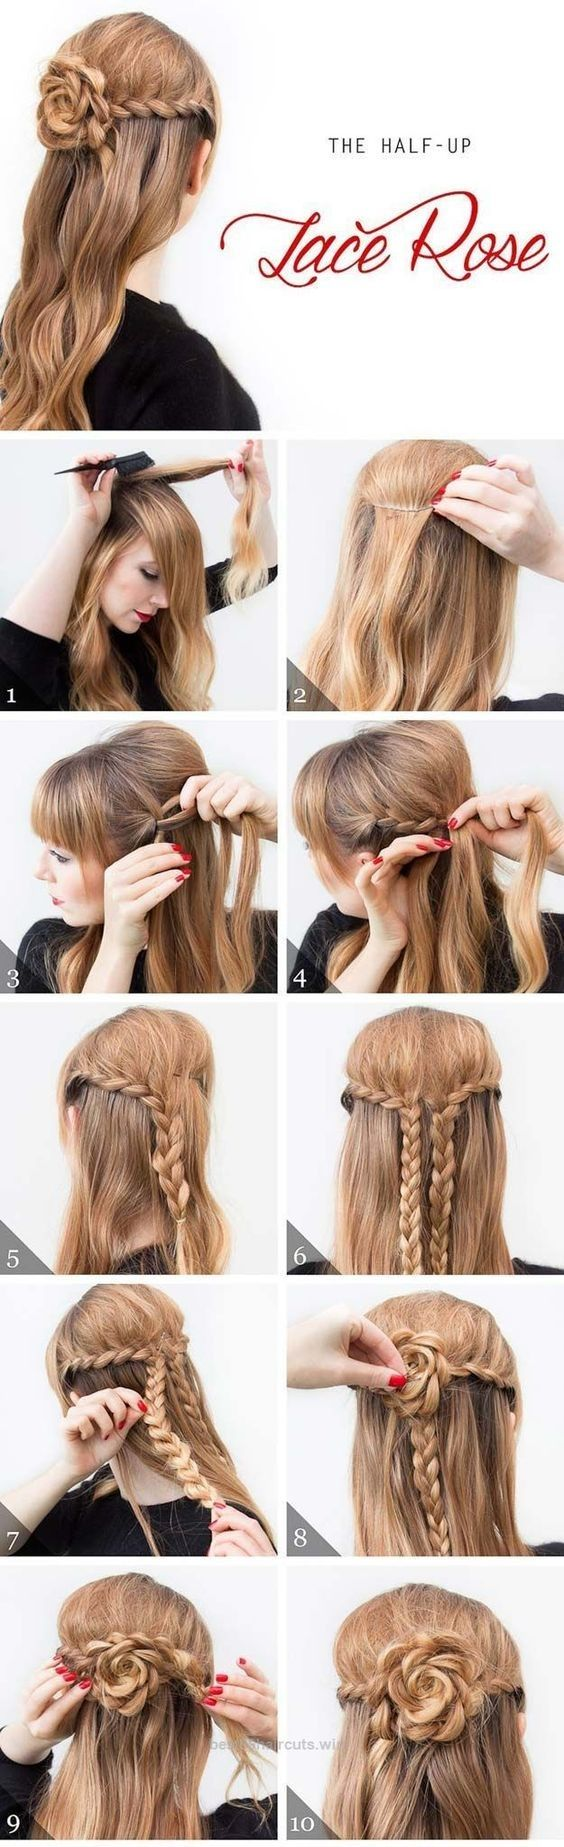 10 hairdo botches that can influence you to look more established